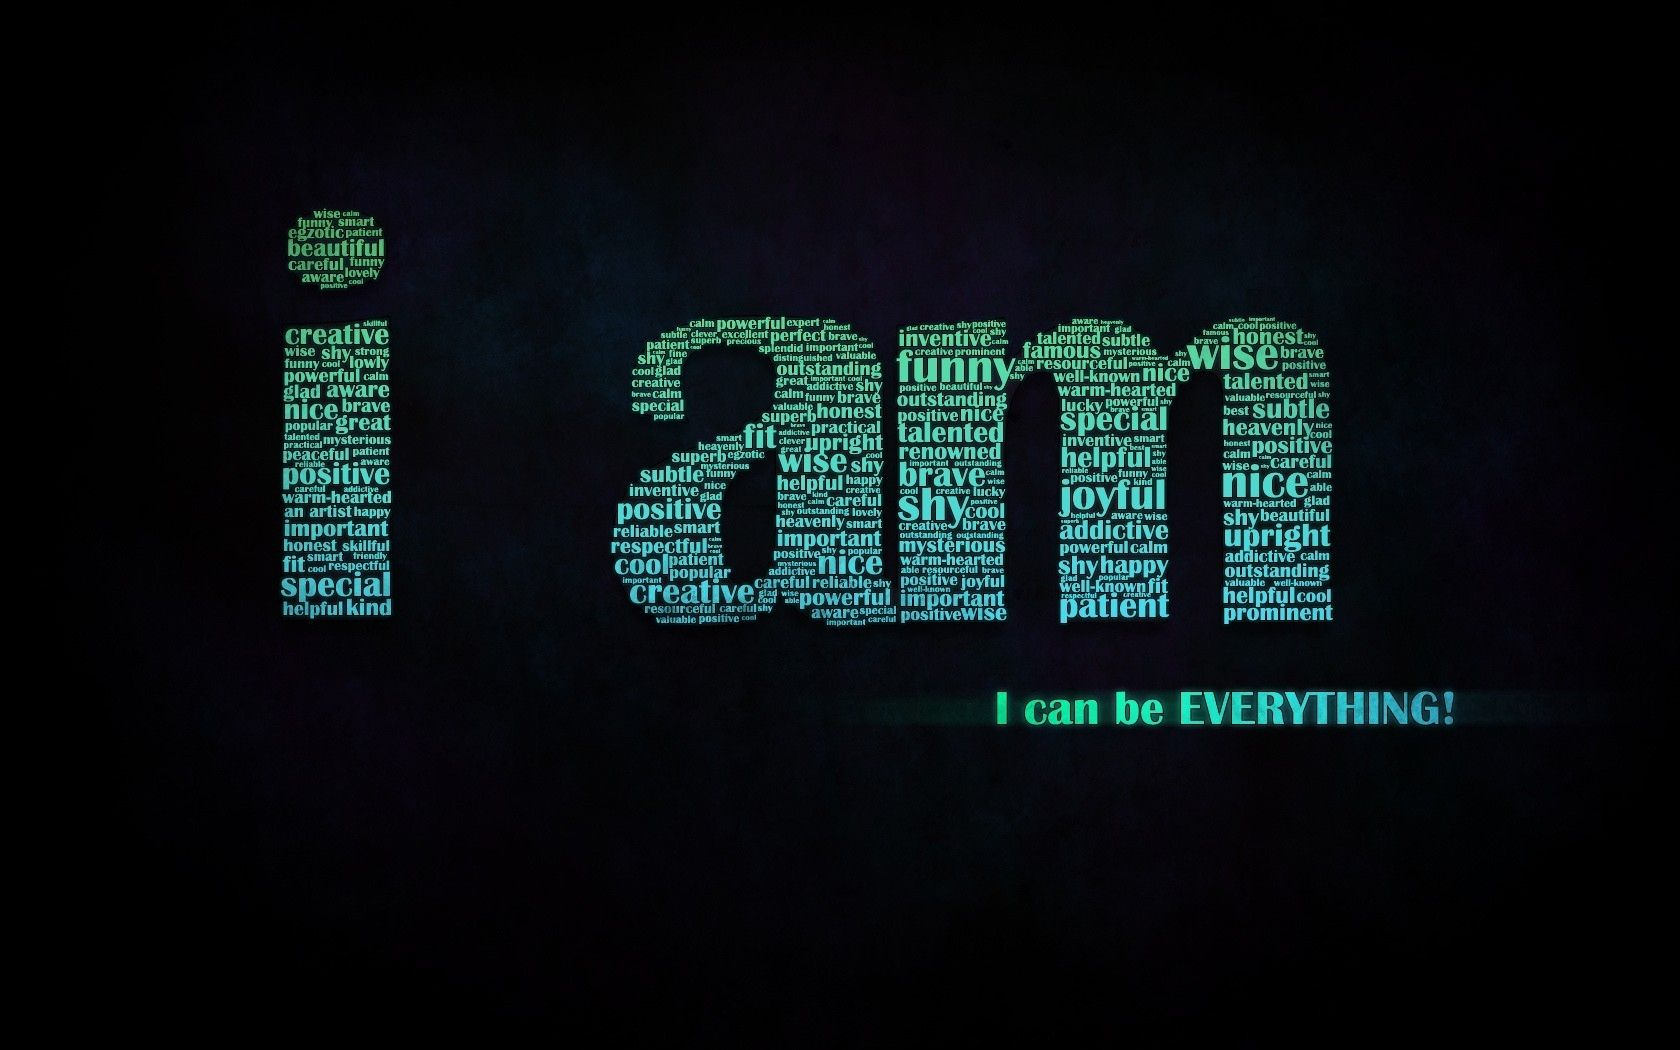 Hd wallpaper inspirational - Awesome 35 Amazing Hd Motivational Wallpaper For Your Desktop